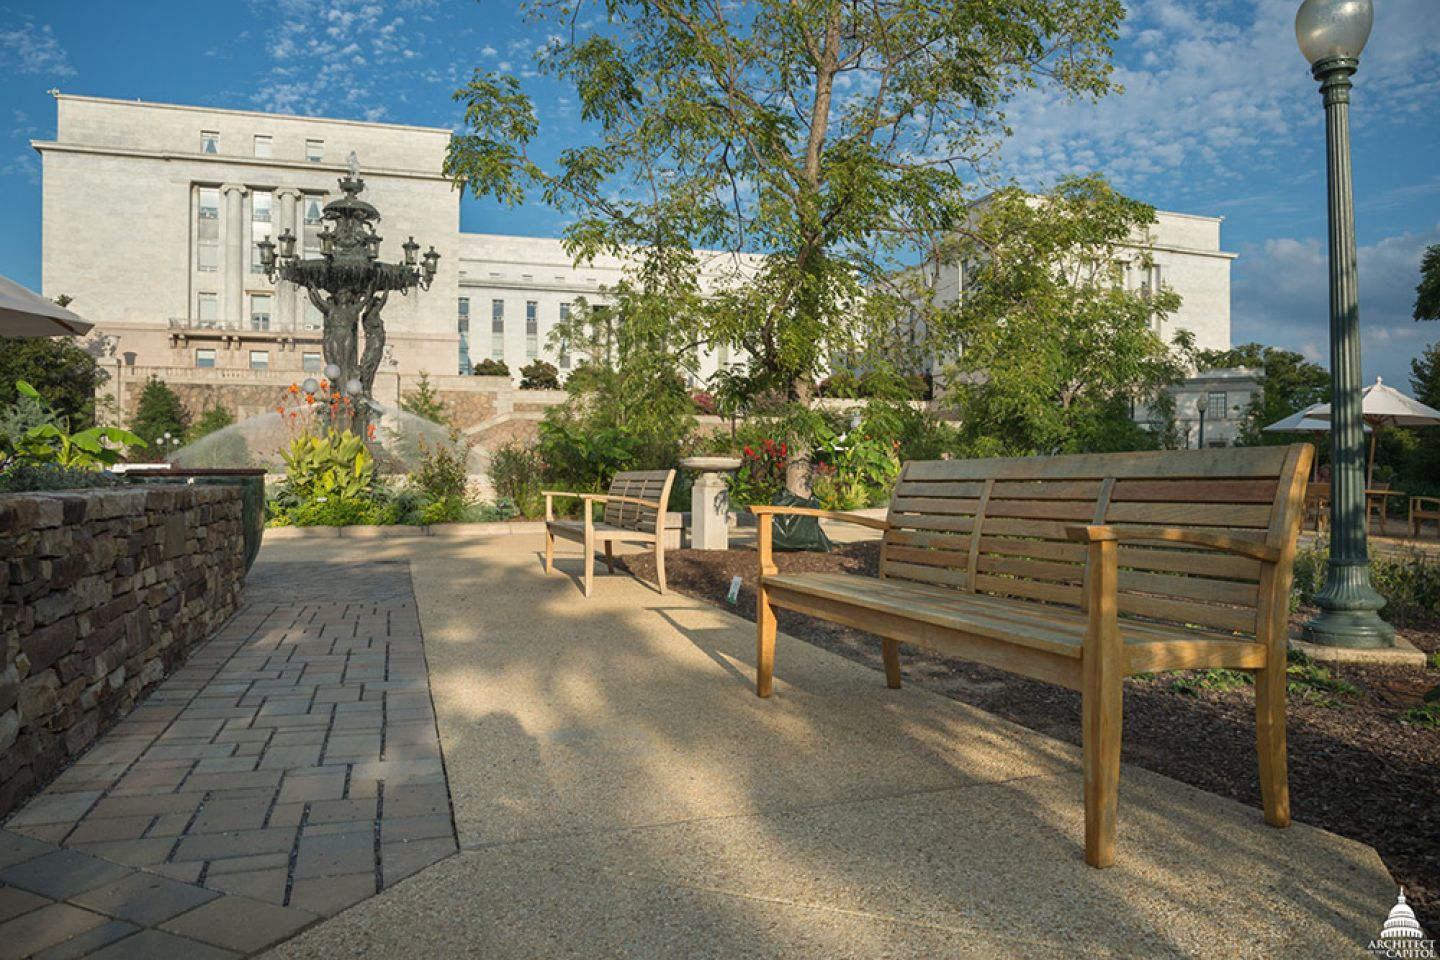 The park includes permeable pavement (left) and new furniture made from locally salvaged white oak.